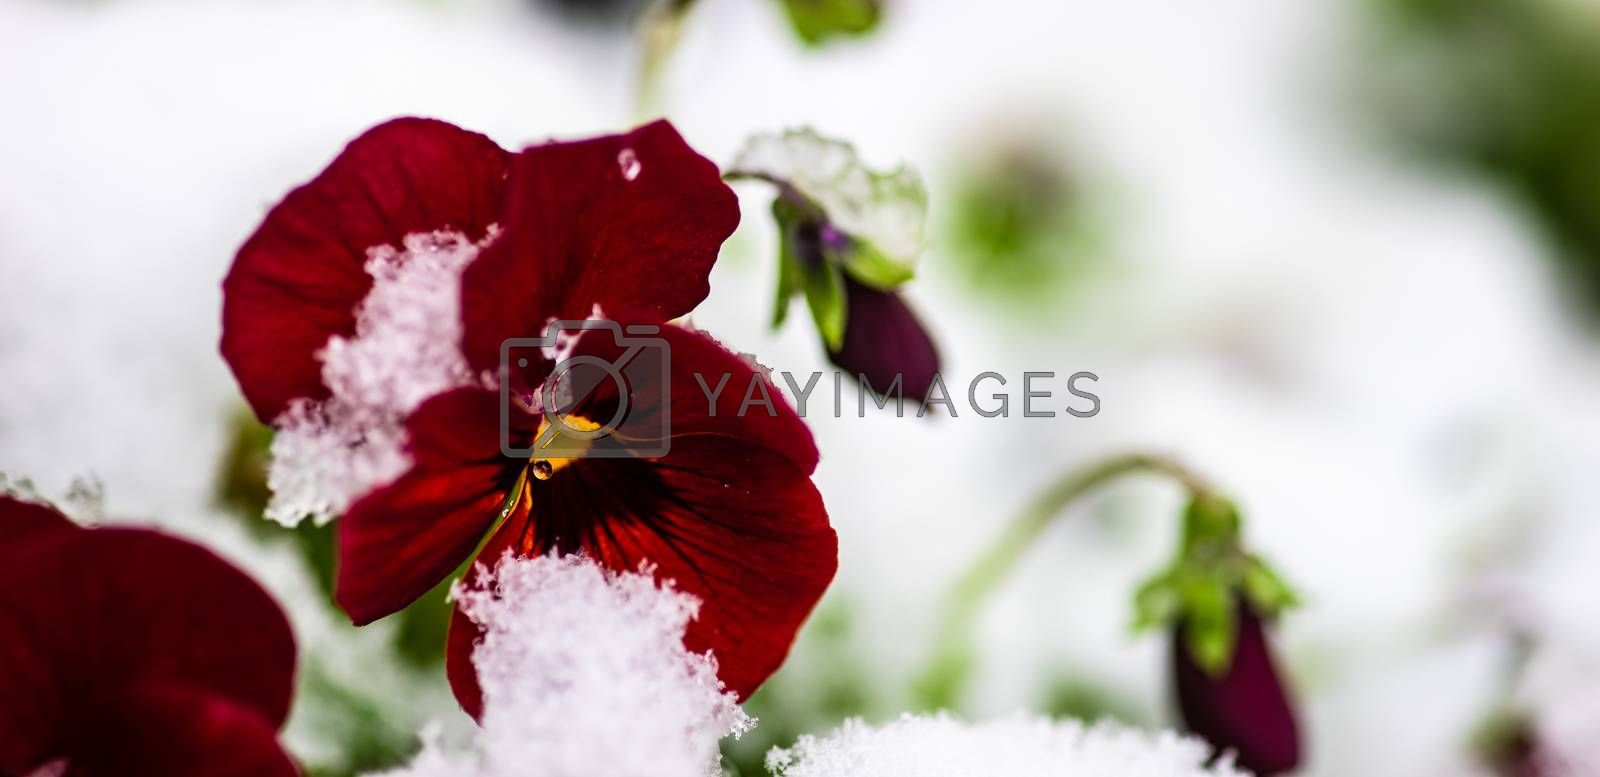 Beautiful tricolor viola flowers ina spring time garden with snow and water drops